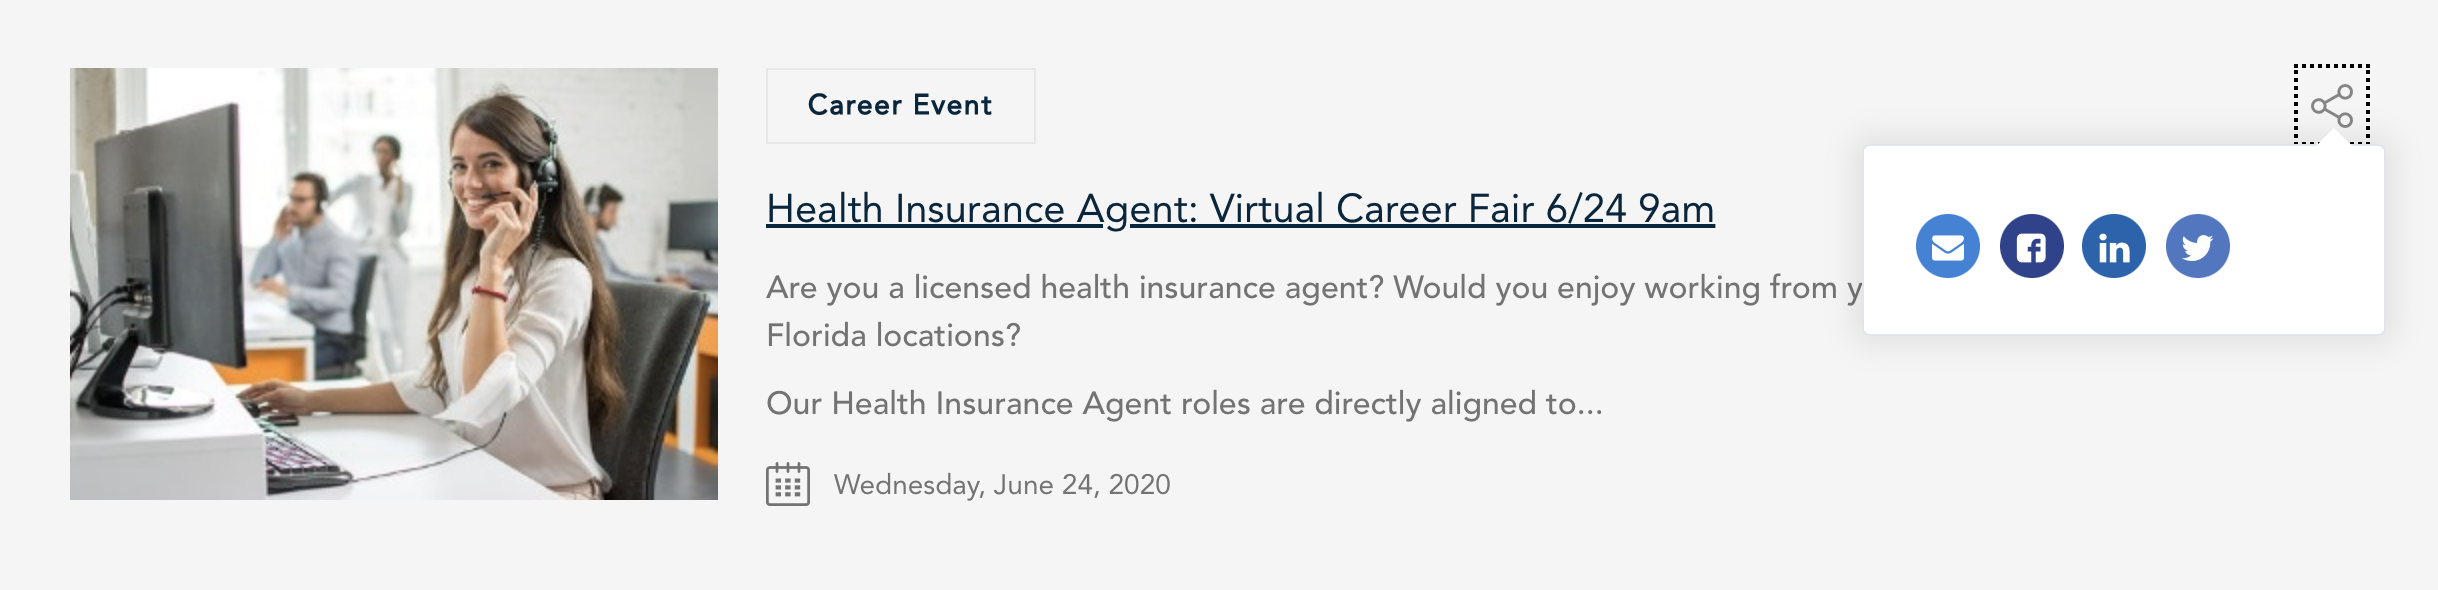 Guidewell virtual event details on career site screenshot